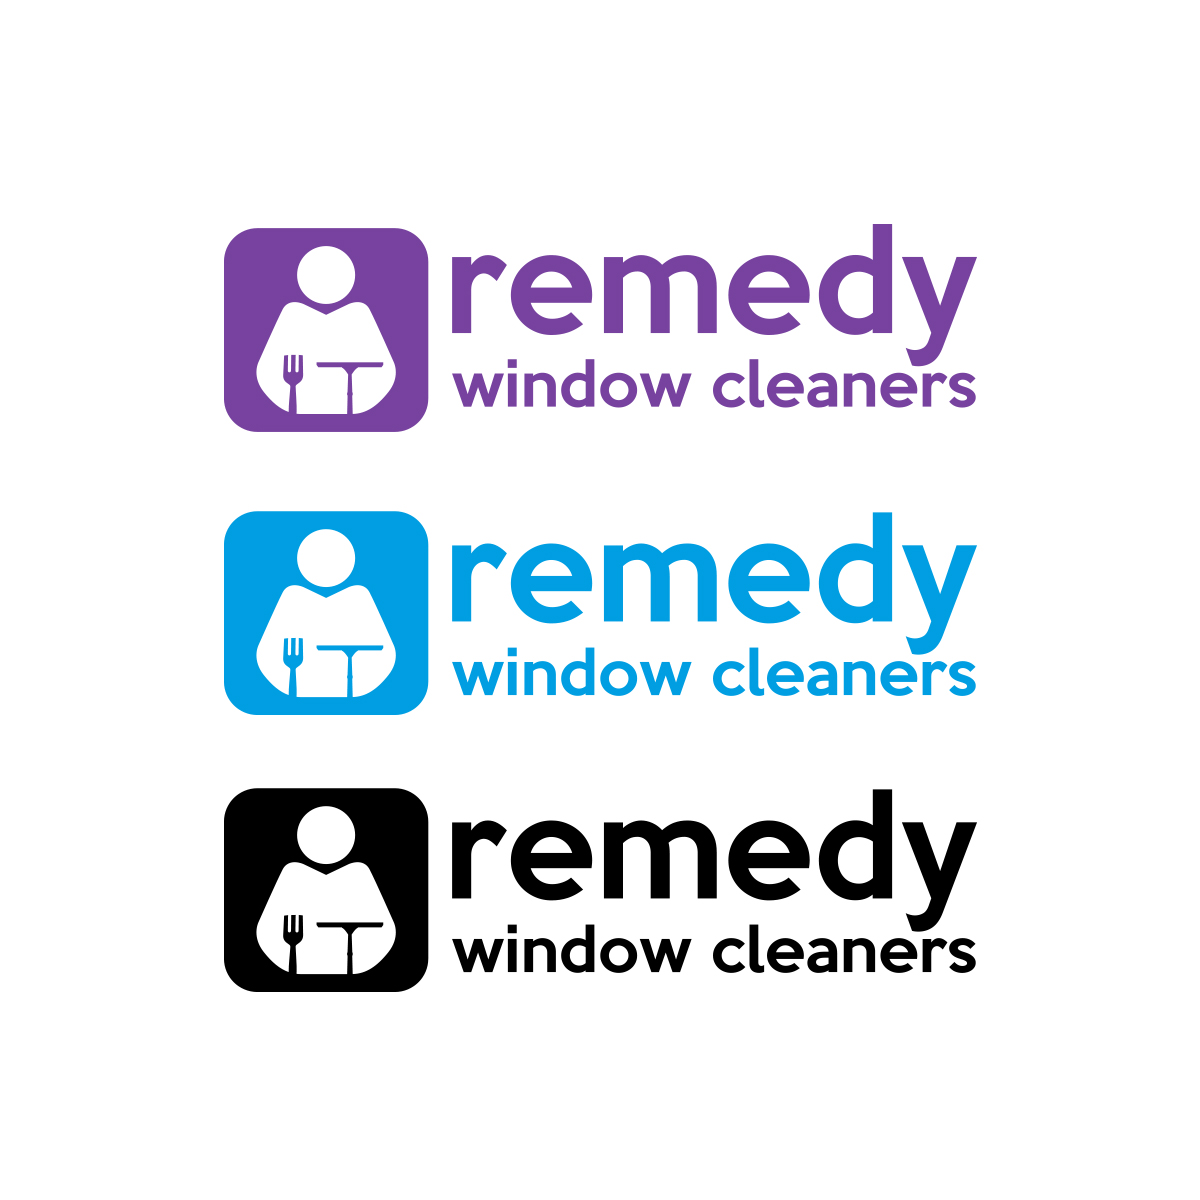 521 personable colorful window cleaning logo designs for for Window cleaning logo ideas